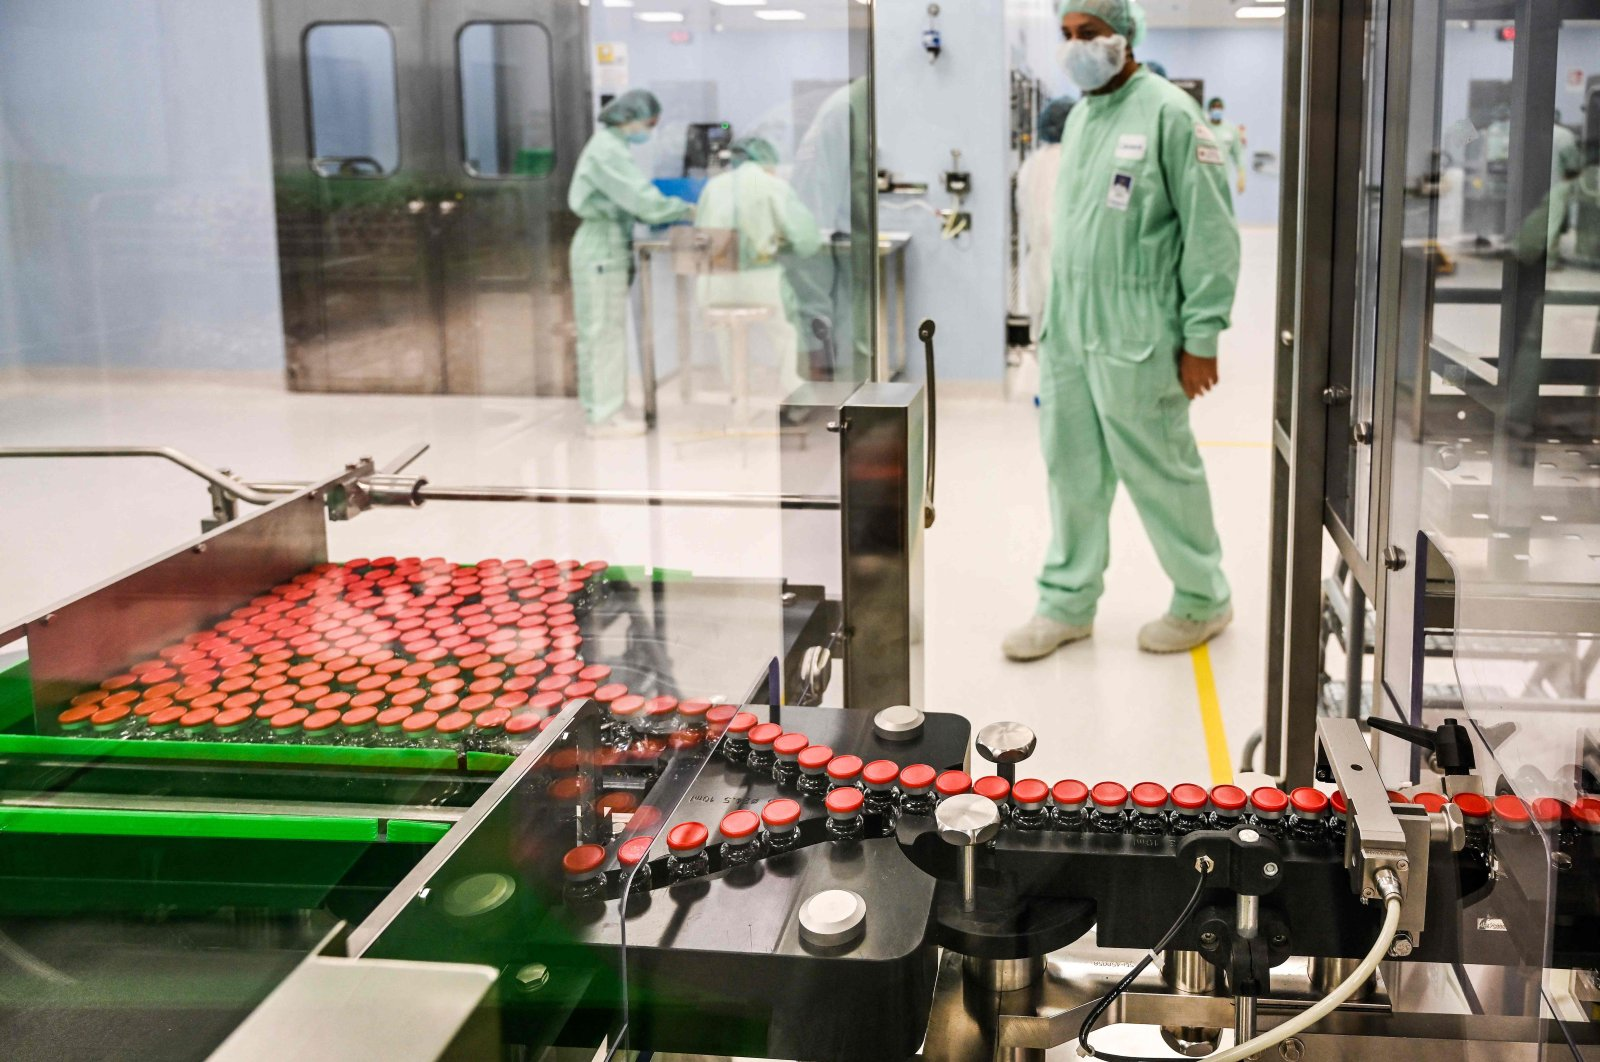 A laboratory technician supervises capped vials during filling and packaging tests for the large-scale production and supply of AstraZeneca's COVID-19 vaccine, at a biologics' manufacturing facility in Anagni, Italy, Sept. 11, 2020. (AFP Photo)